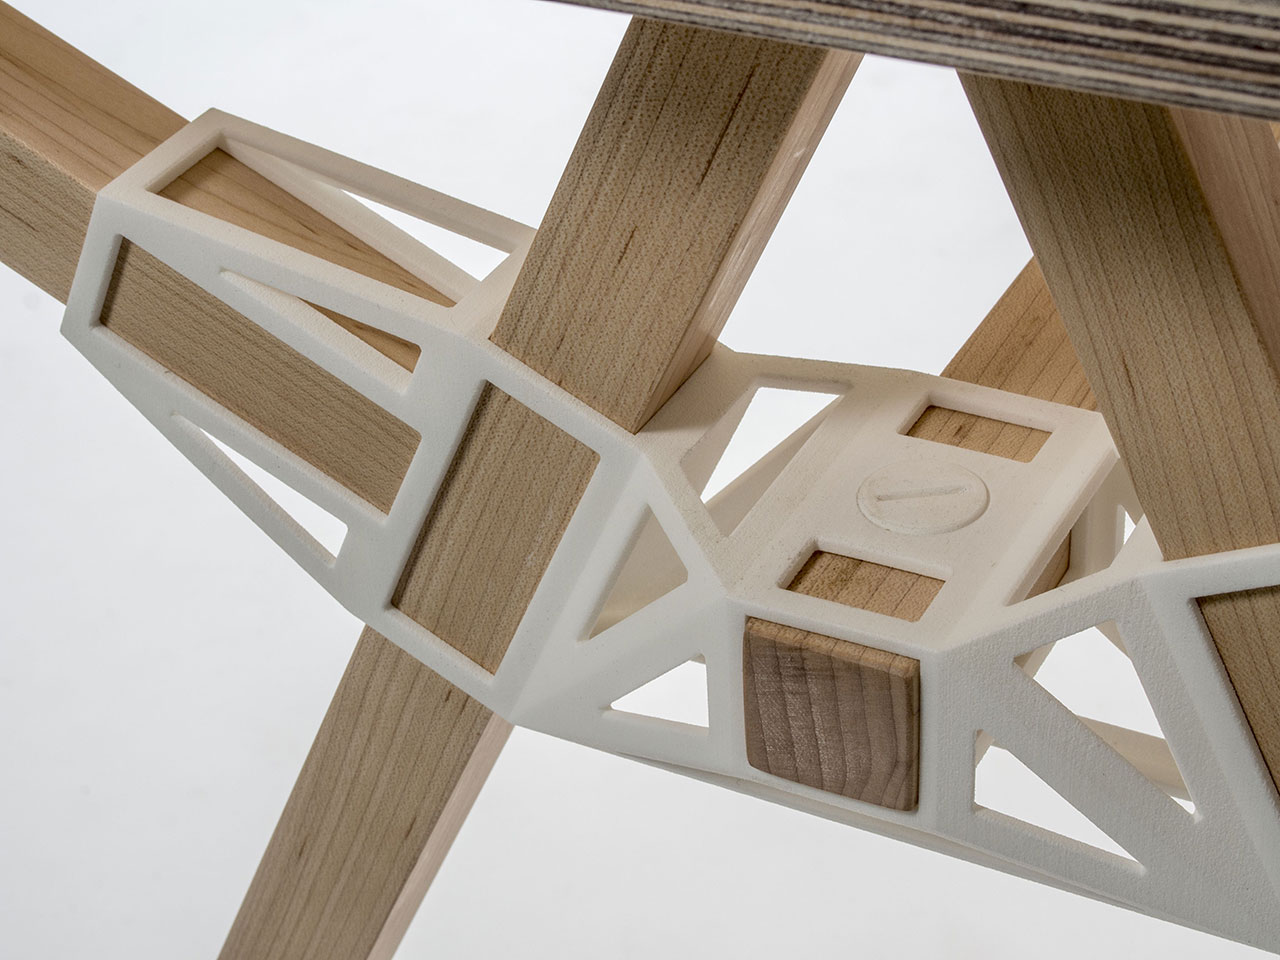 Studio Minale Maeda, Keytones table (first prototype), 2014, Collection Vitra Design Museum.